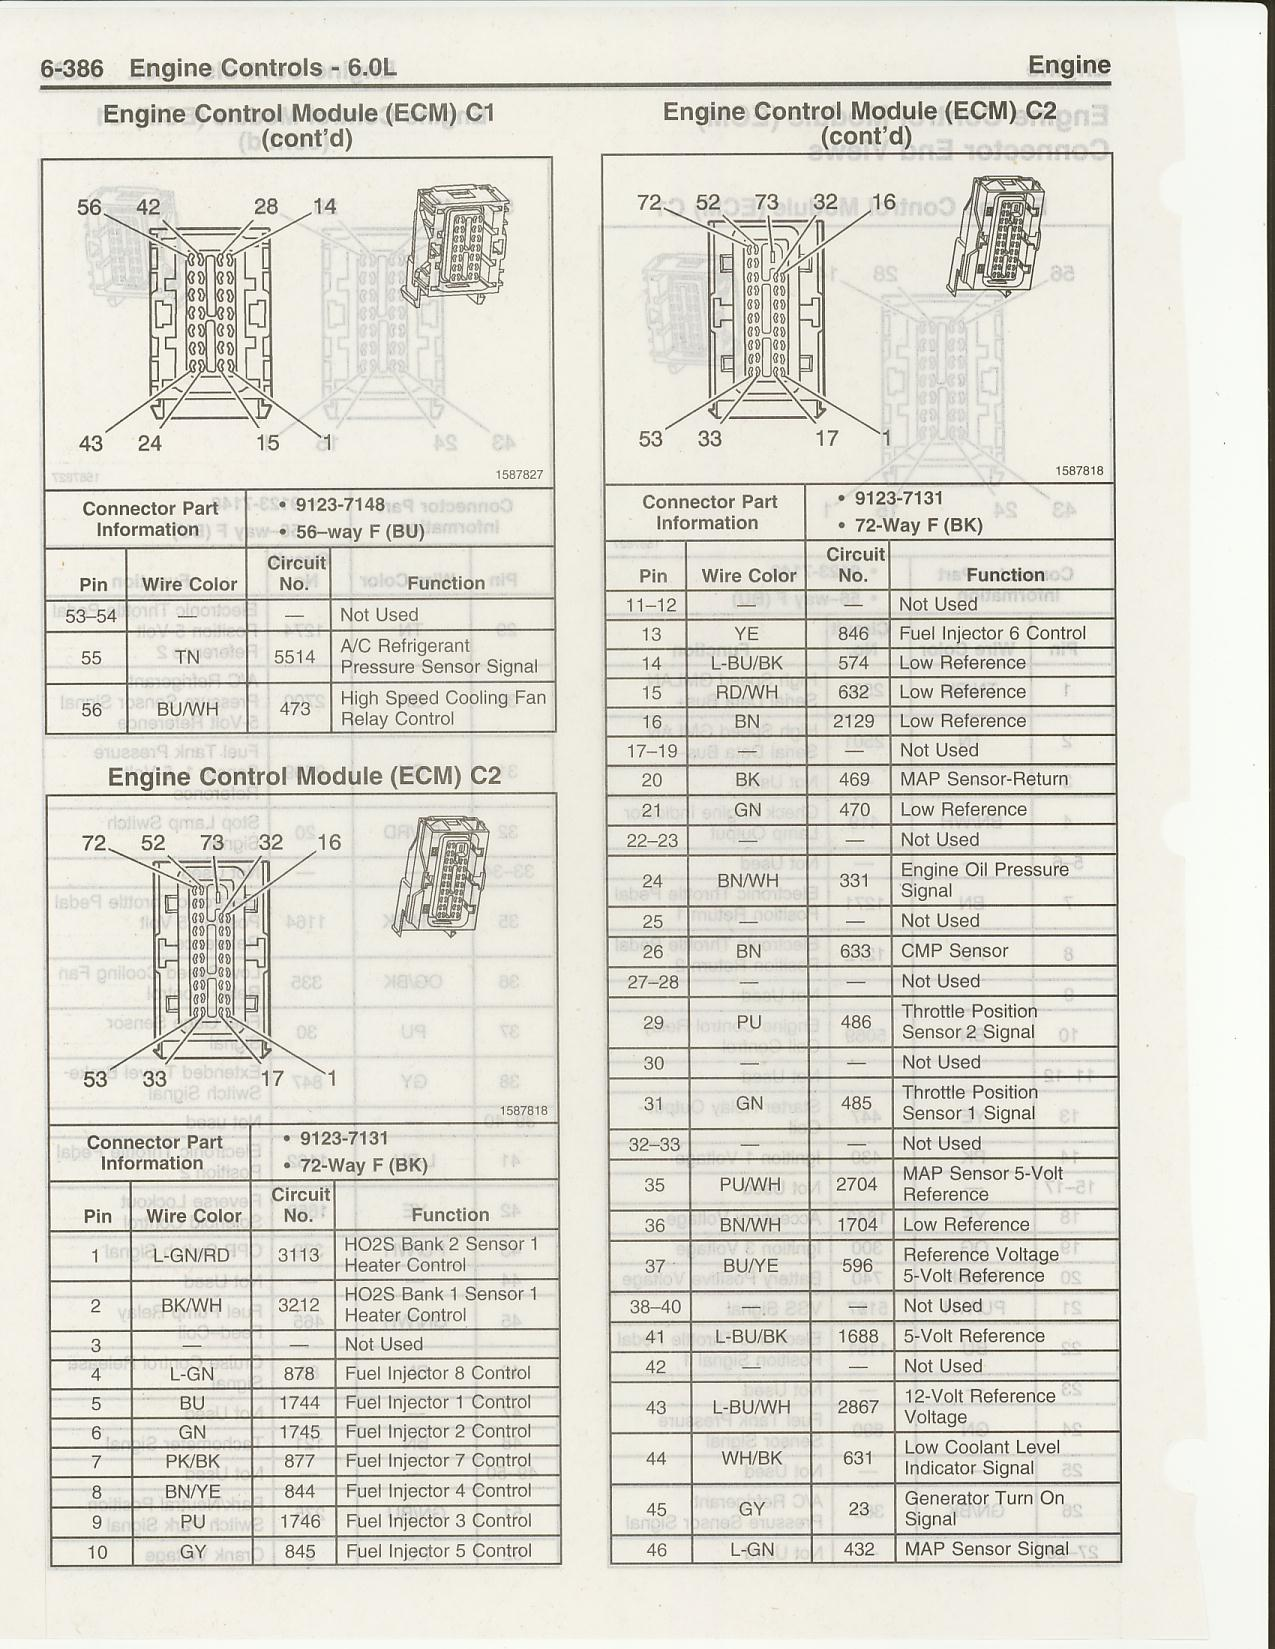 2008 Chevy Ecm Wiring Diagram Data Chevrolet C5500 Engine Pinouts And Diagrams Page 4 Ls1tech Camaro Firebird Toyota